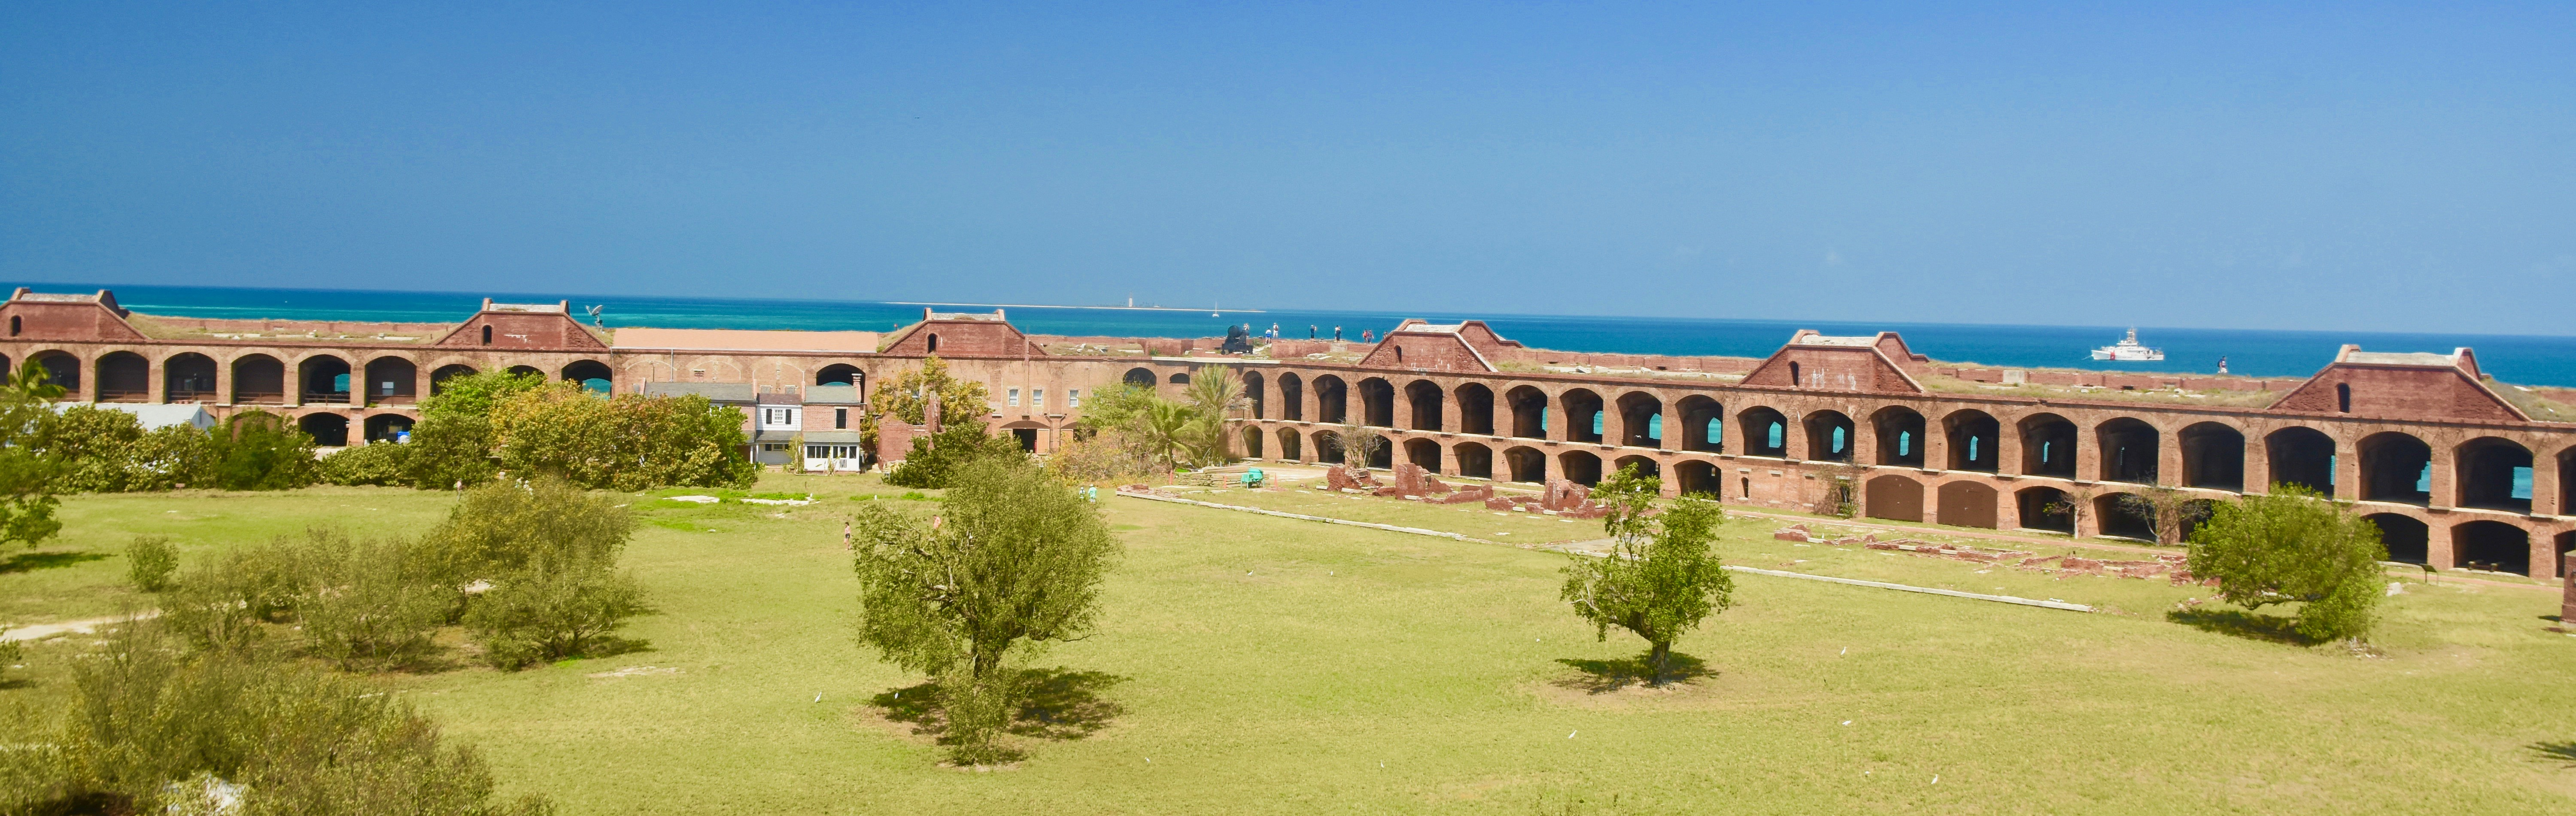 View of Interior from the Top, Dry Tortugas